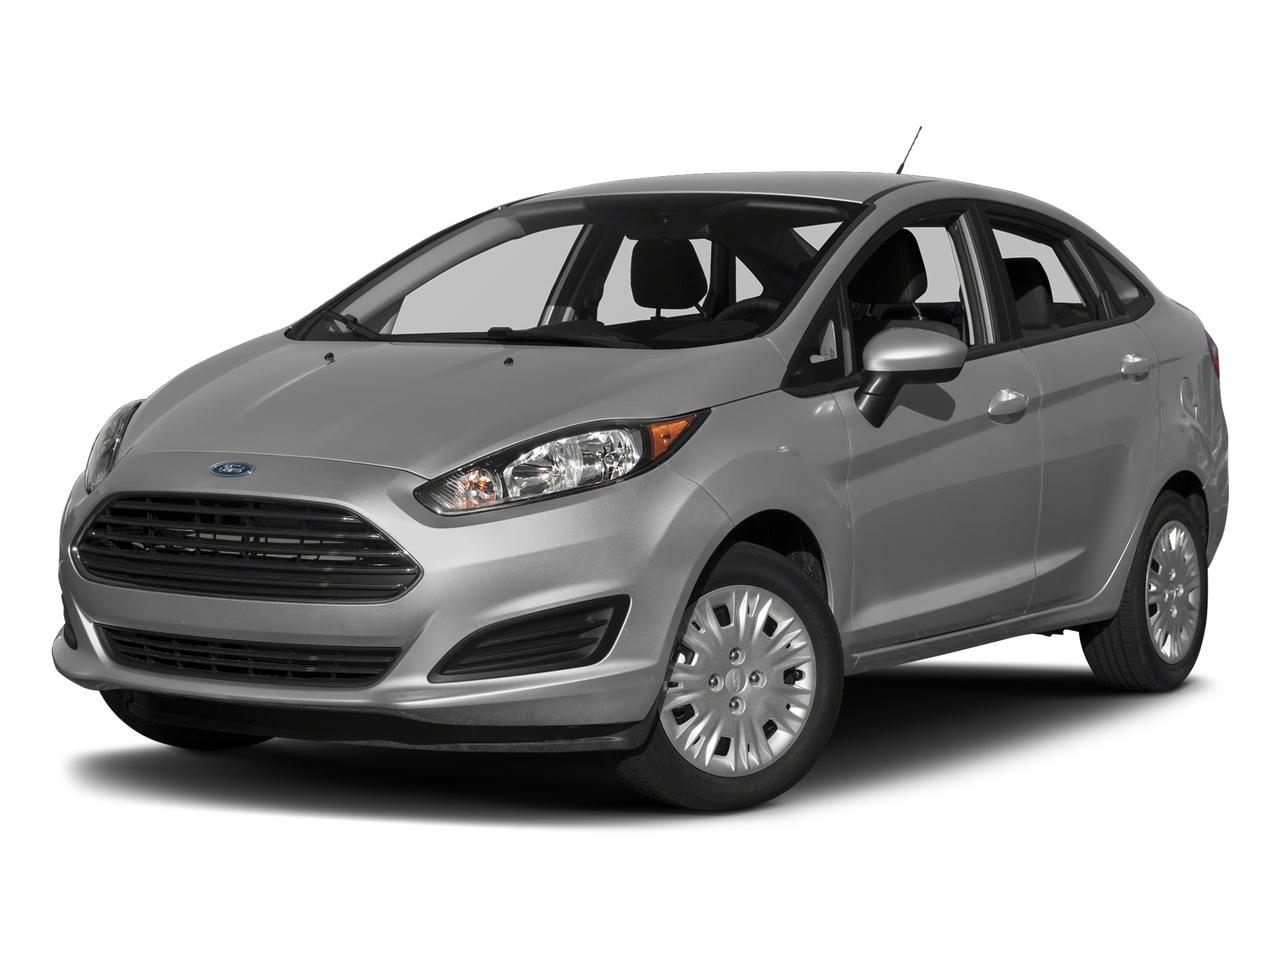 2017 Ford Fiesta Vehicle Photo in Rockville, MD 20852